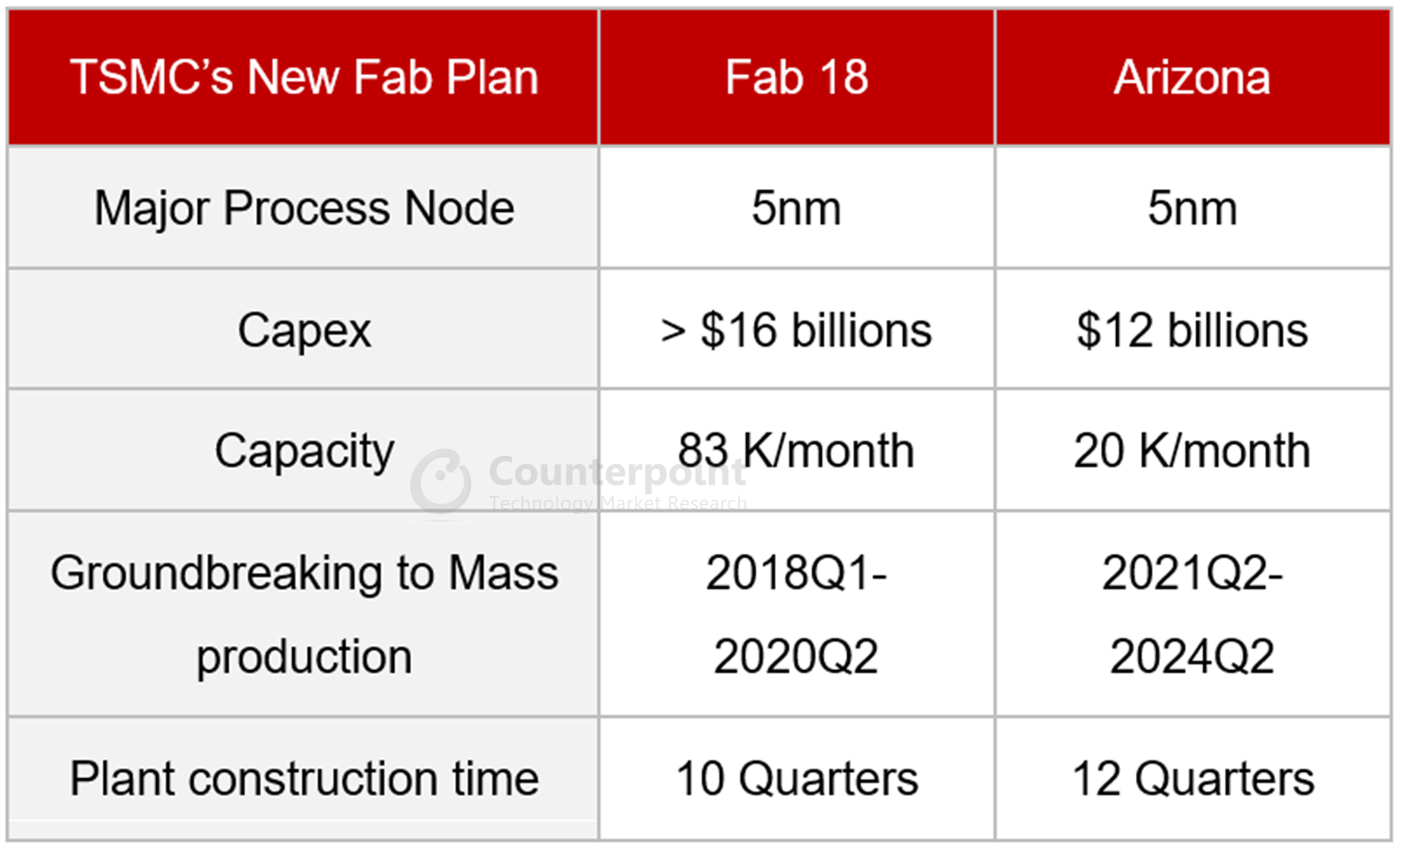 Counterpoint The Comparison of TSMC Fab 18 and New Fab in Arizona